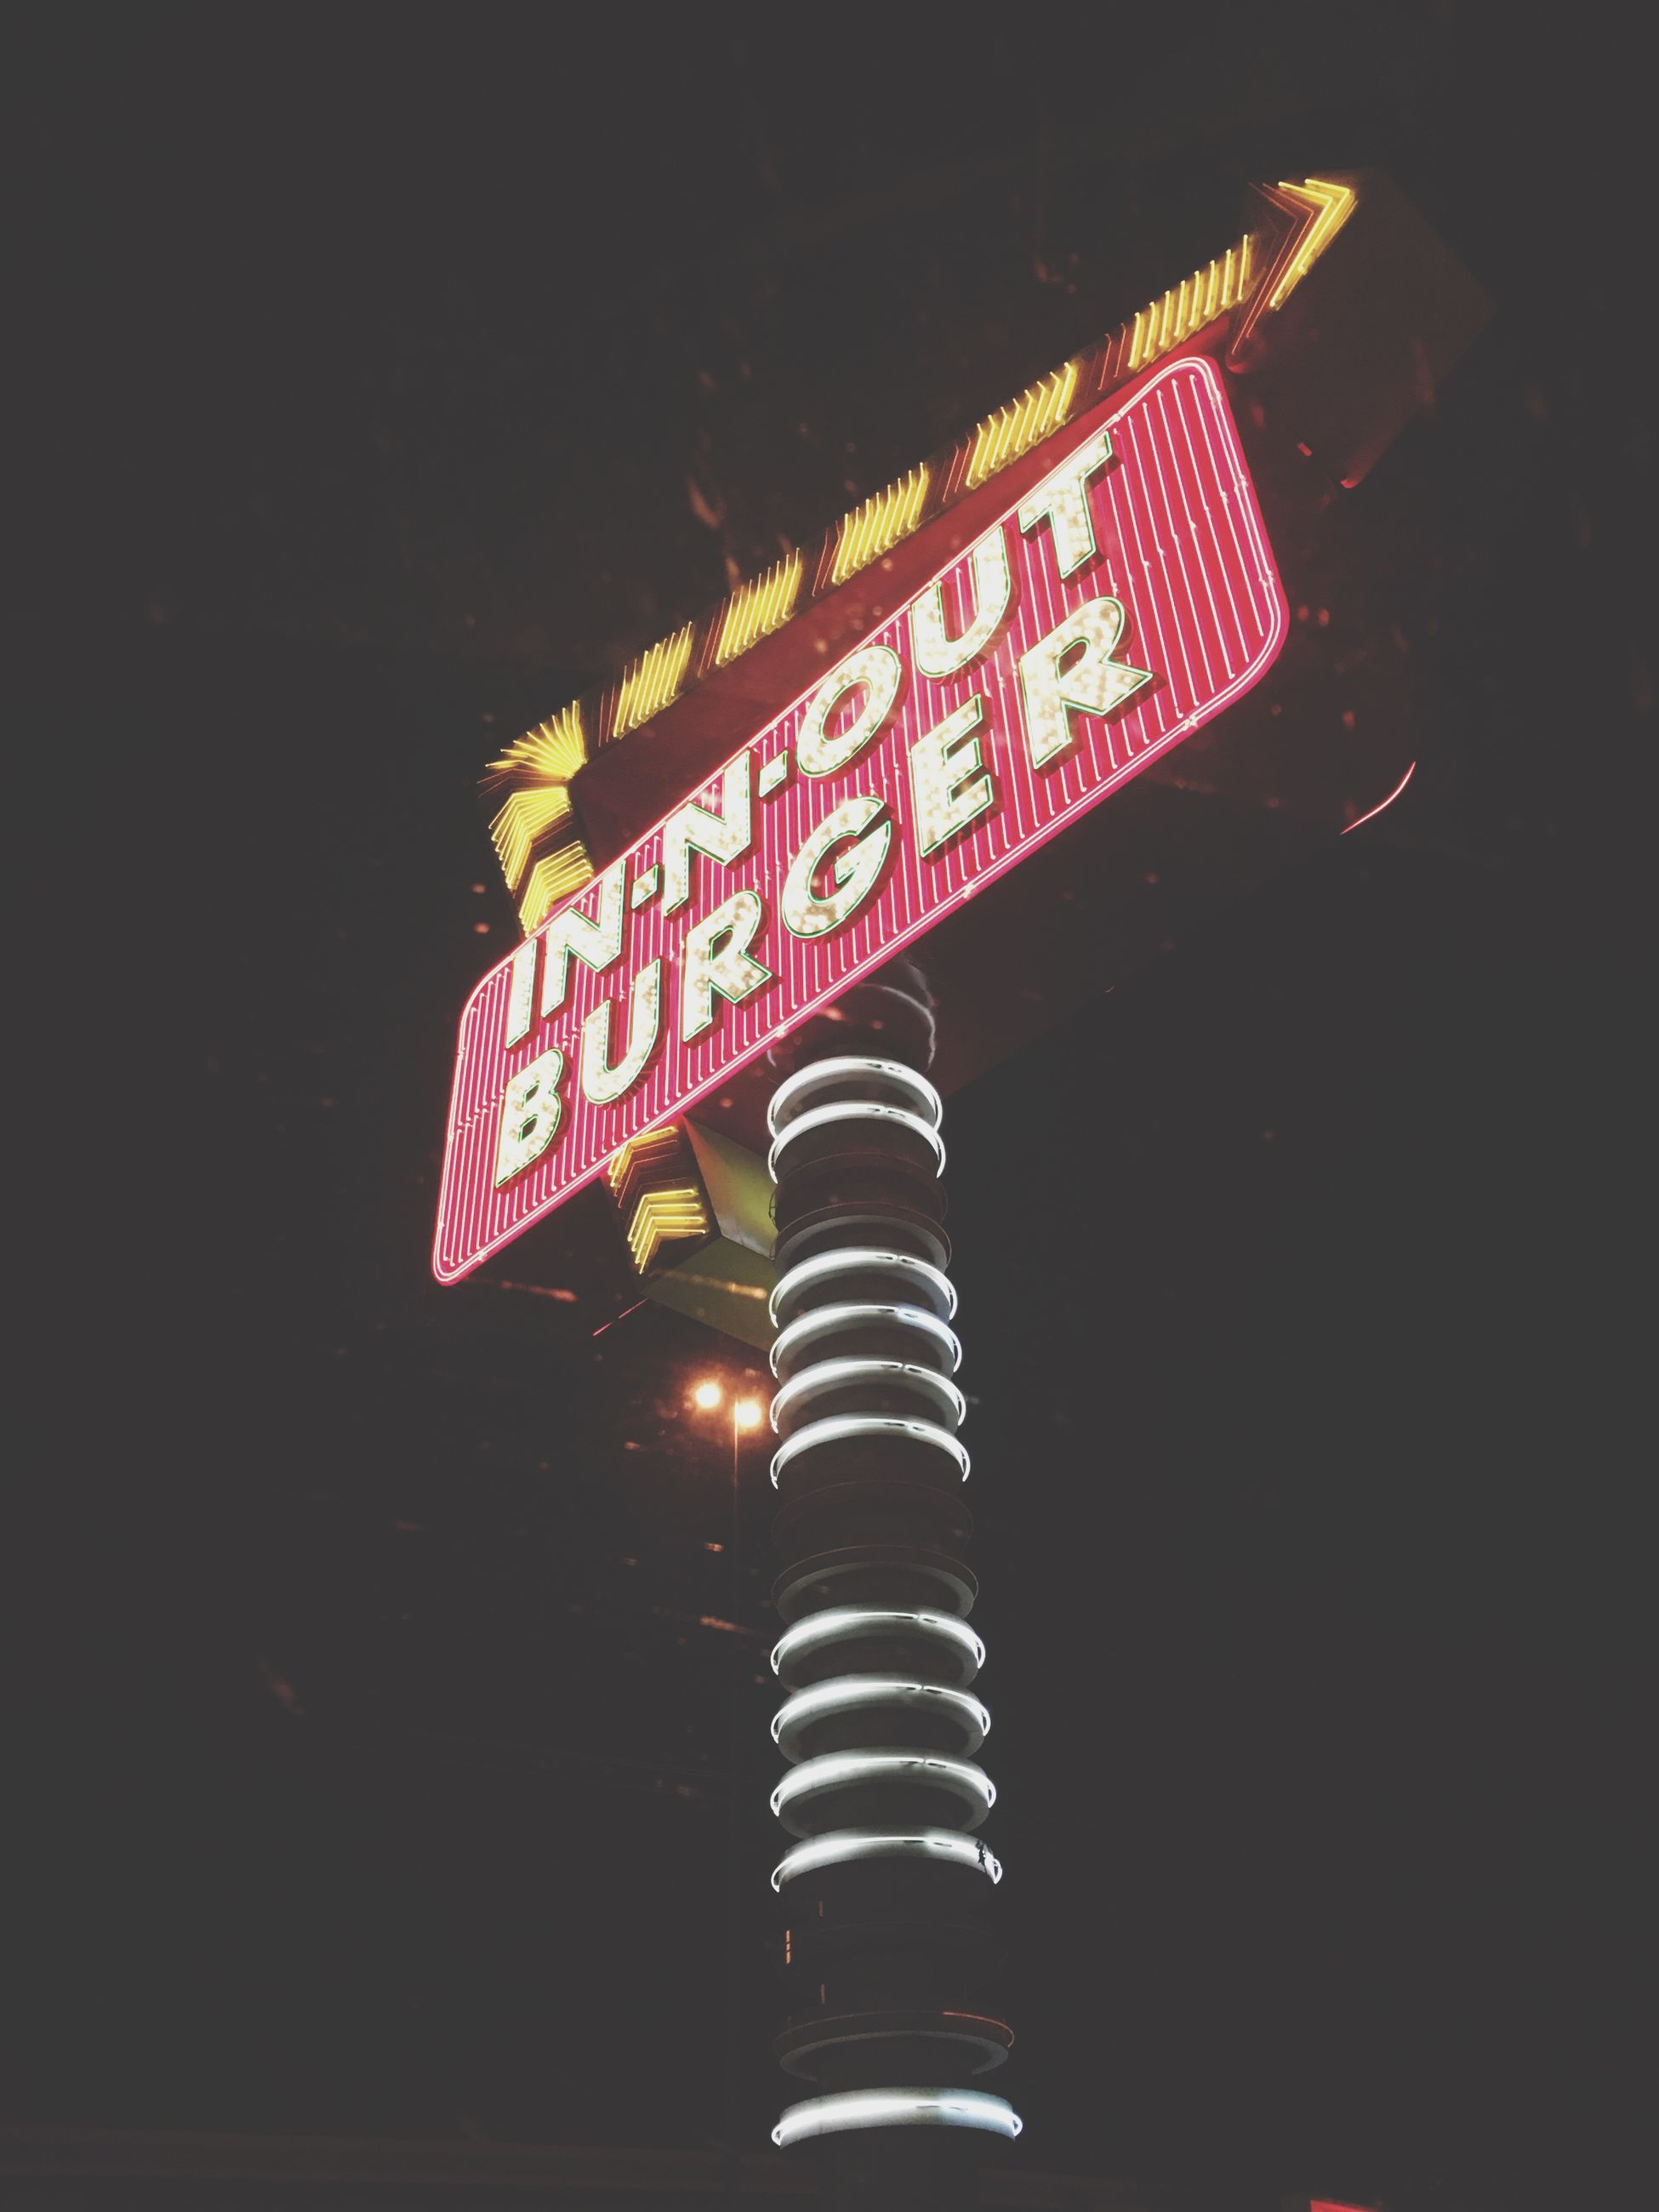 text, communication, illuminated, low angle view, night, no people, lighting equipment, outdoors, neon, sky